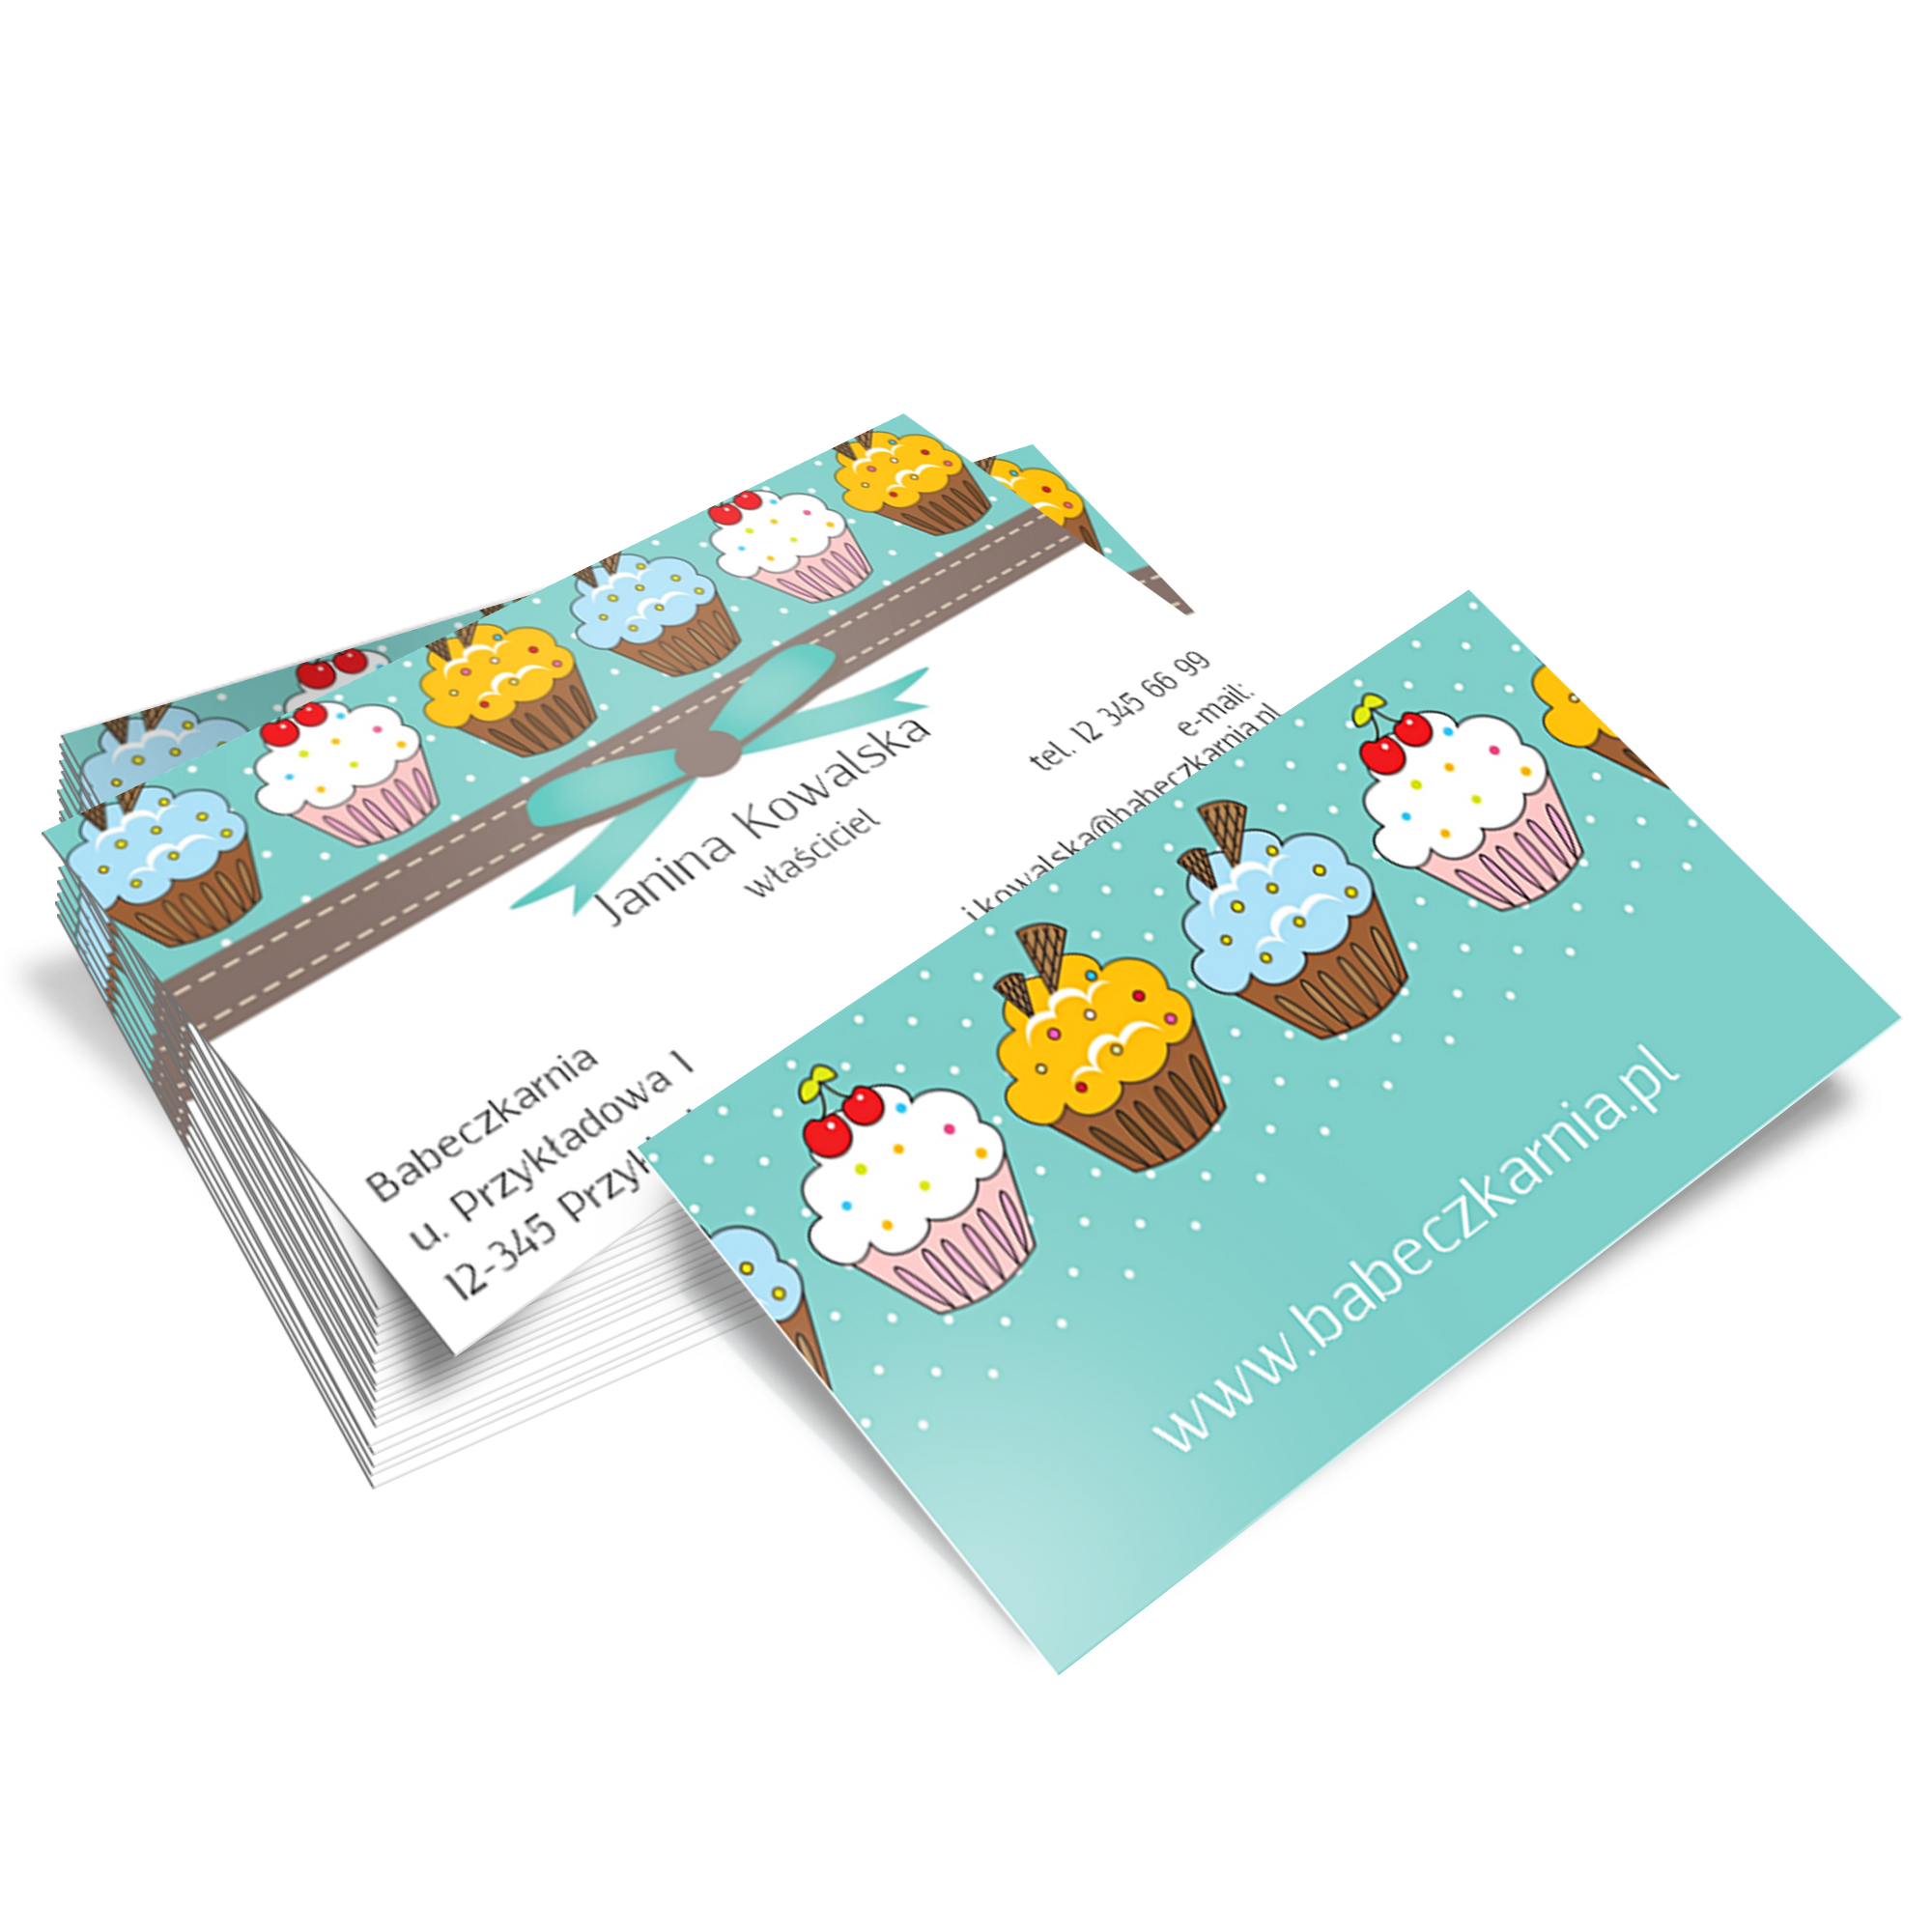 Item Business cards 100 PCs MASTER ON-LINE